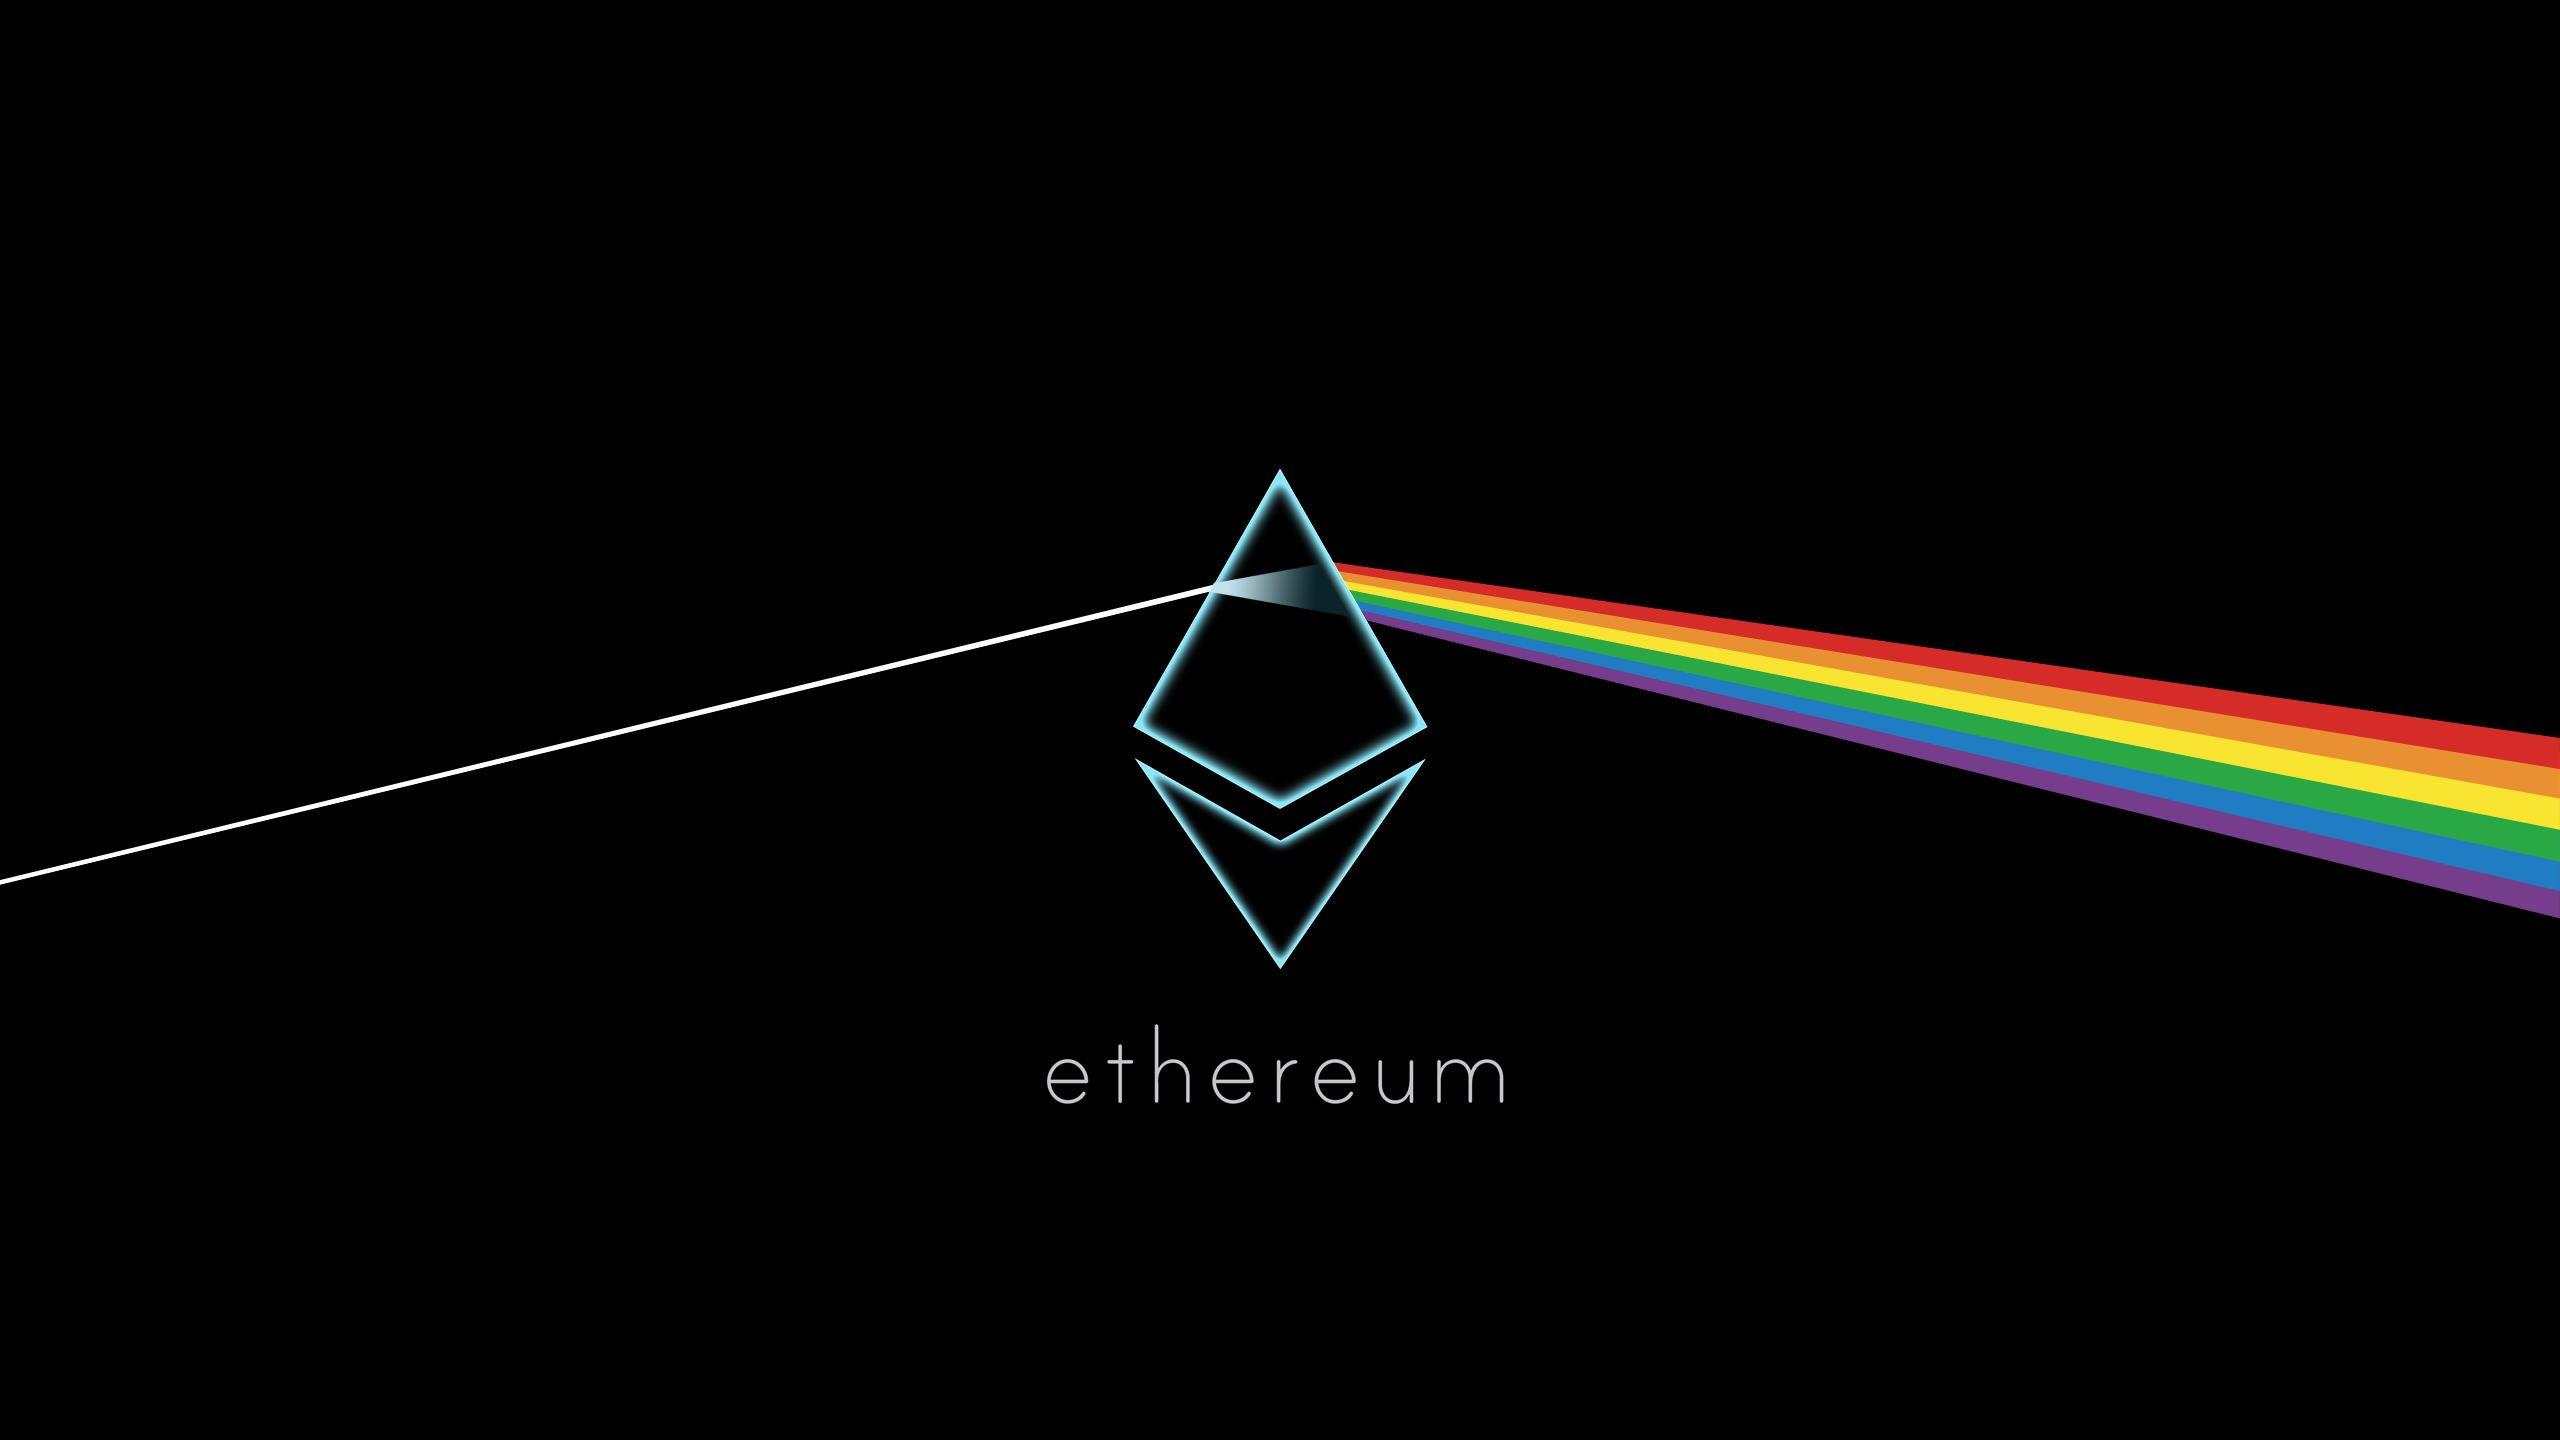 Ethereum background wallpaper image in HD 2560x1440 ethtrader 2560x1440